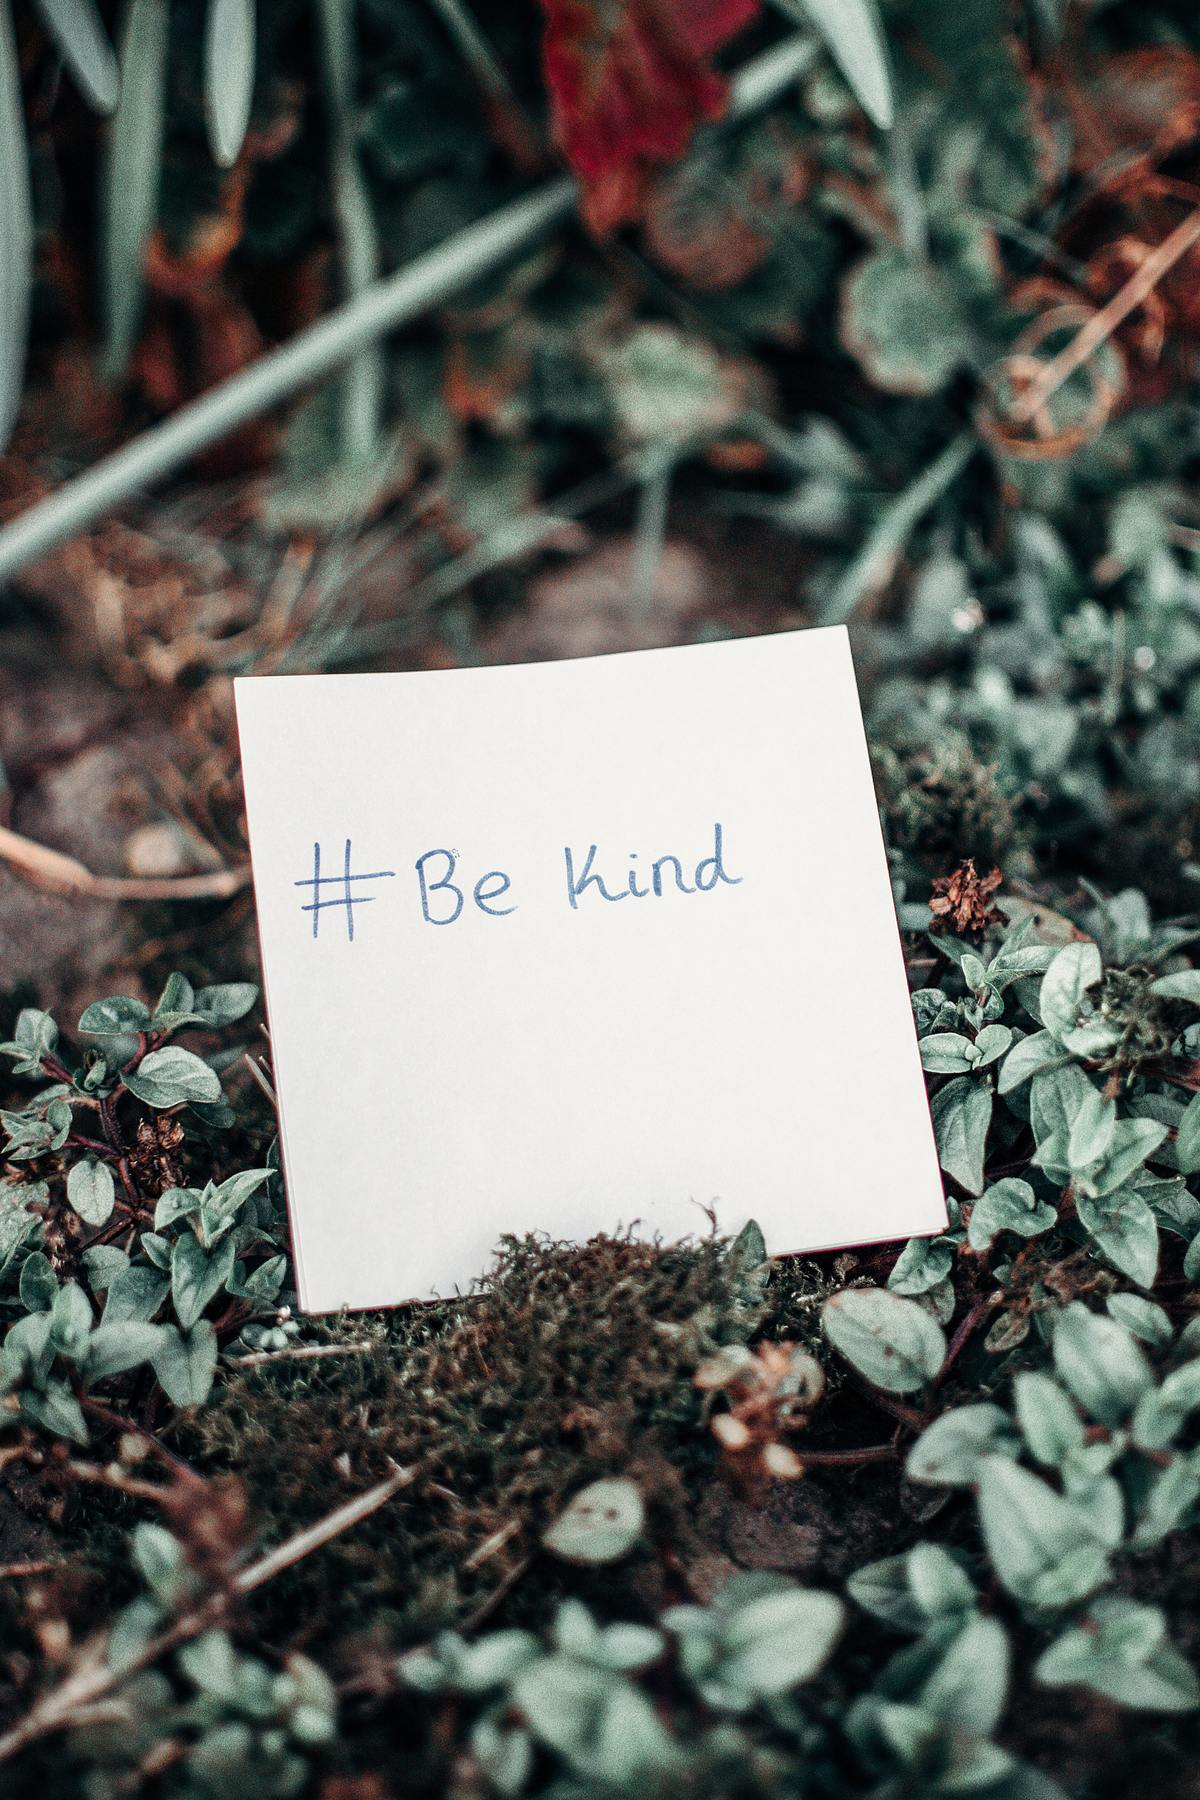 Daily Devotional: The Fruit of the Spirit: Kindness